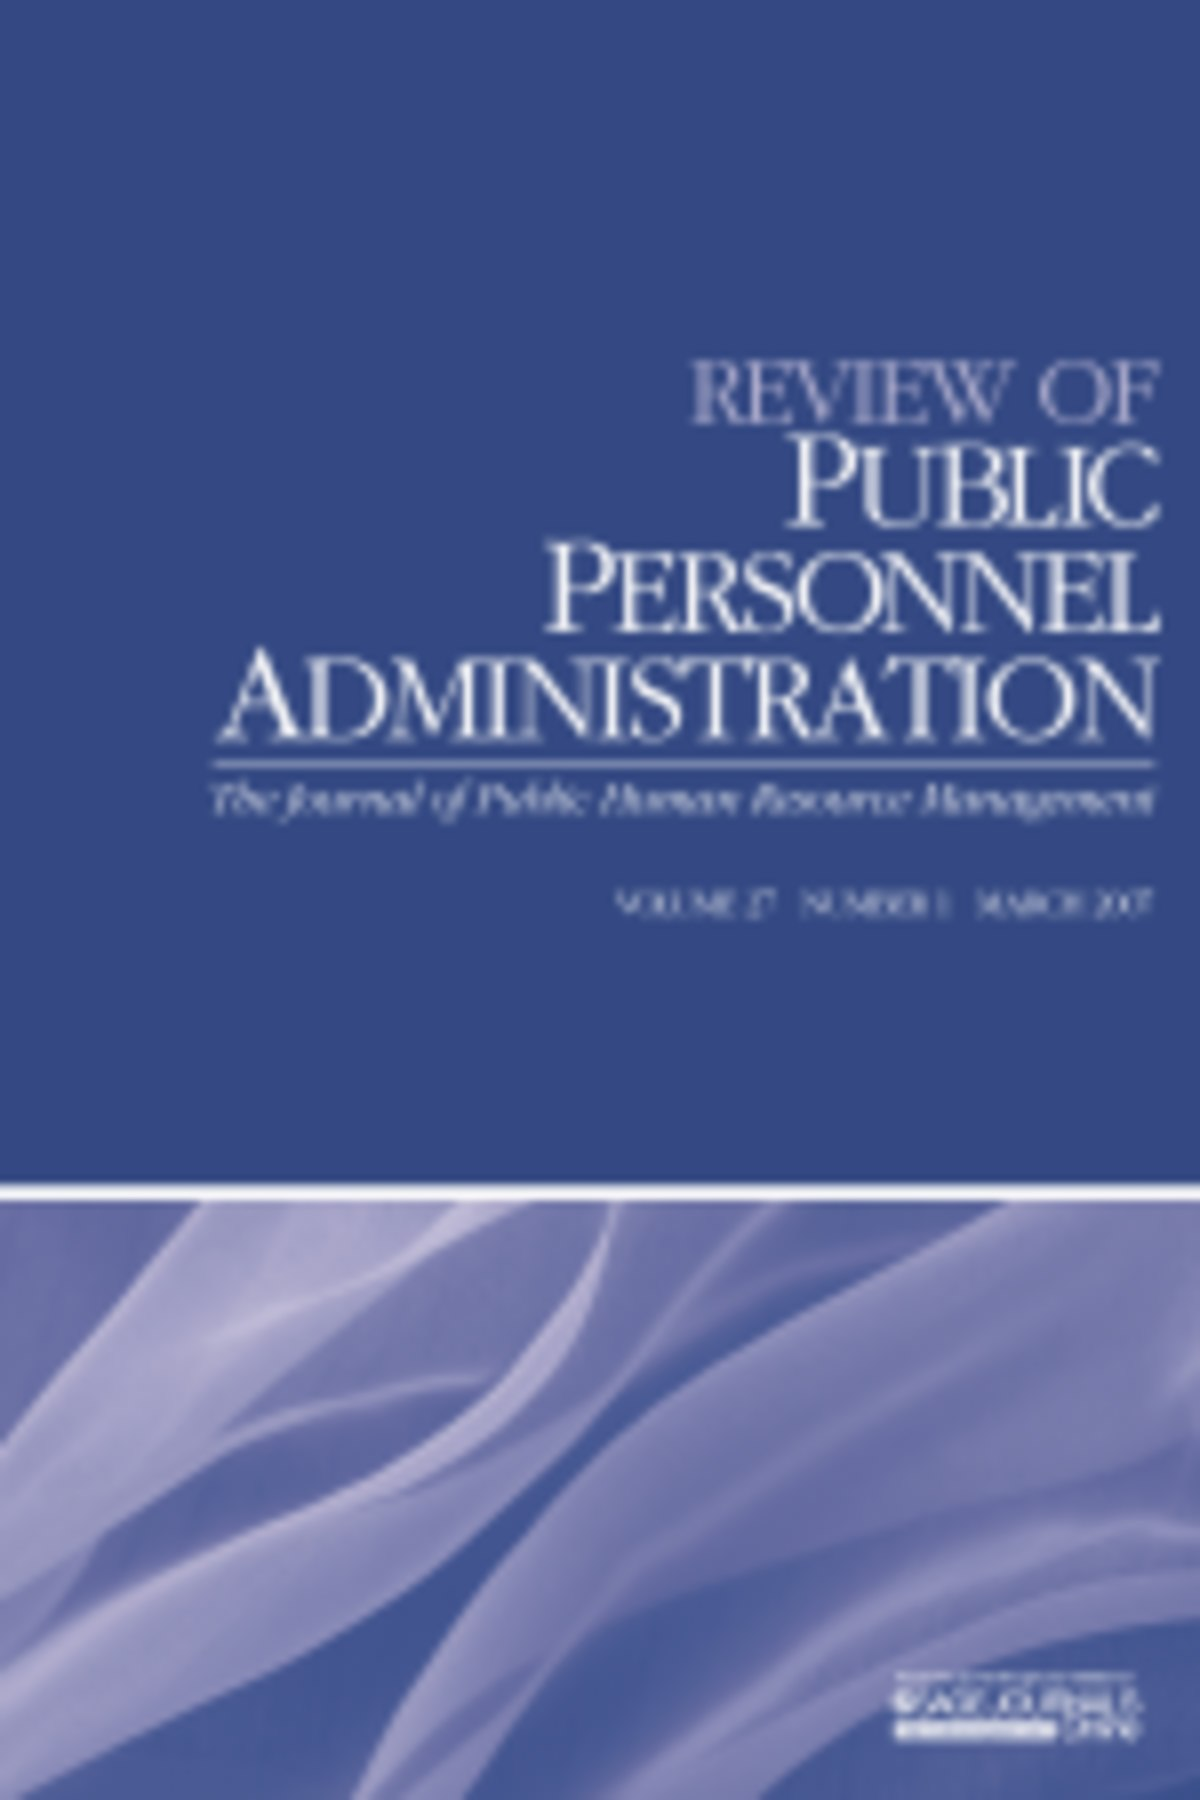 public administration journal